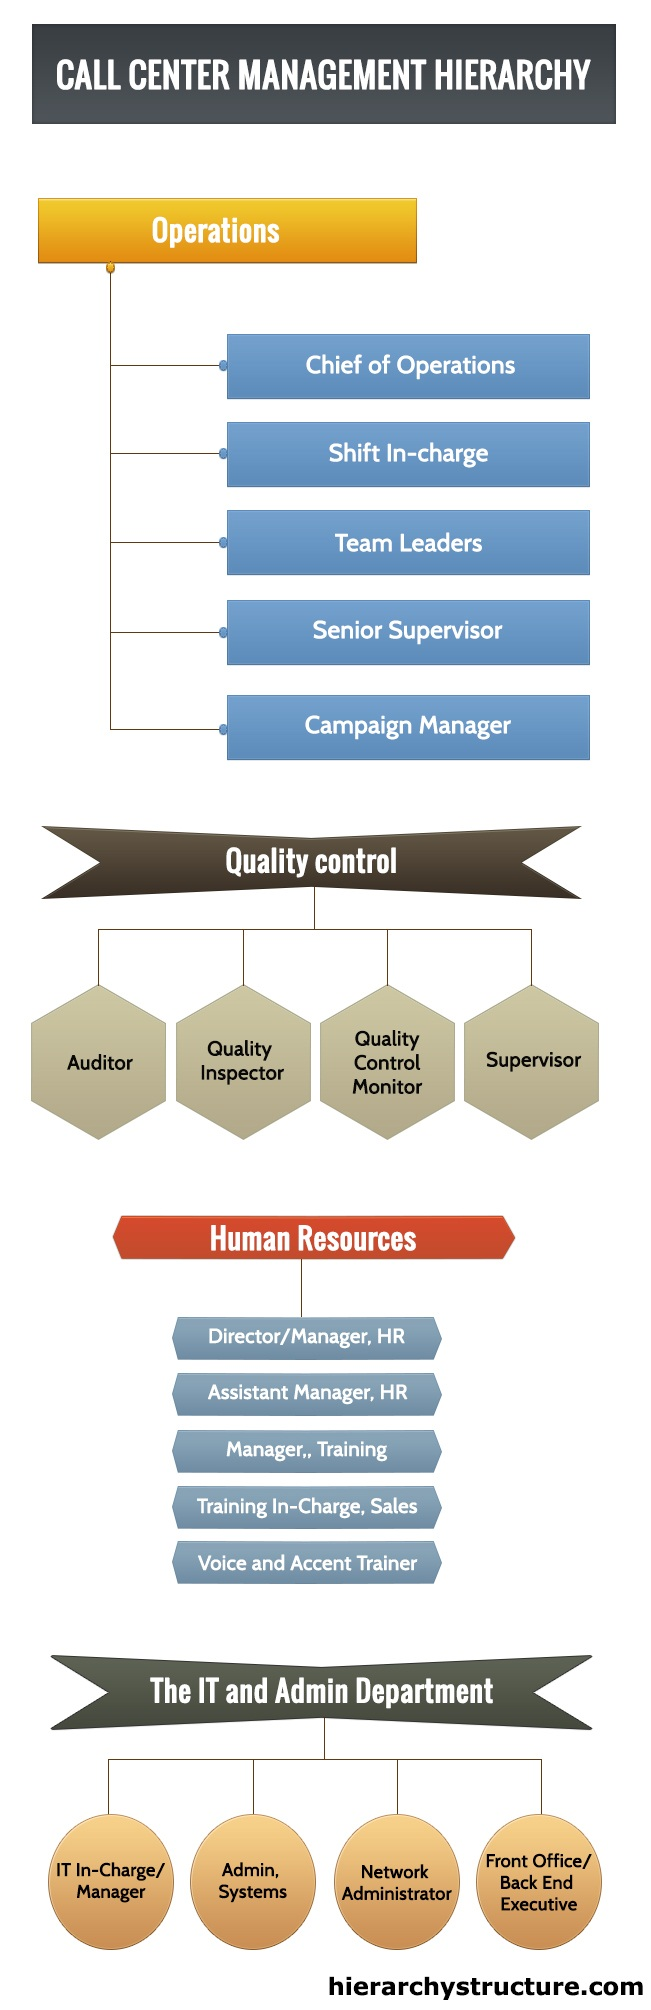 Call Center Management Hierarchy